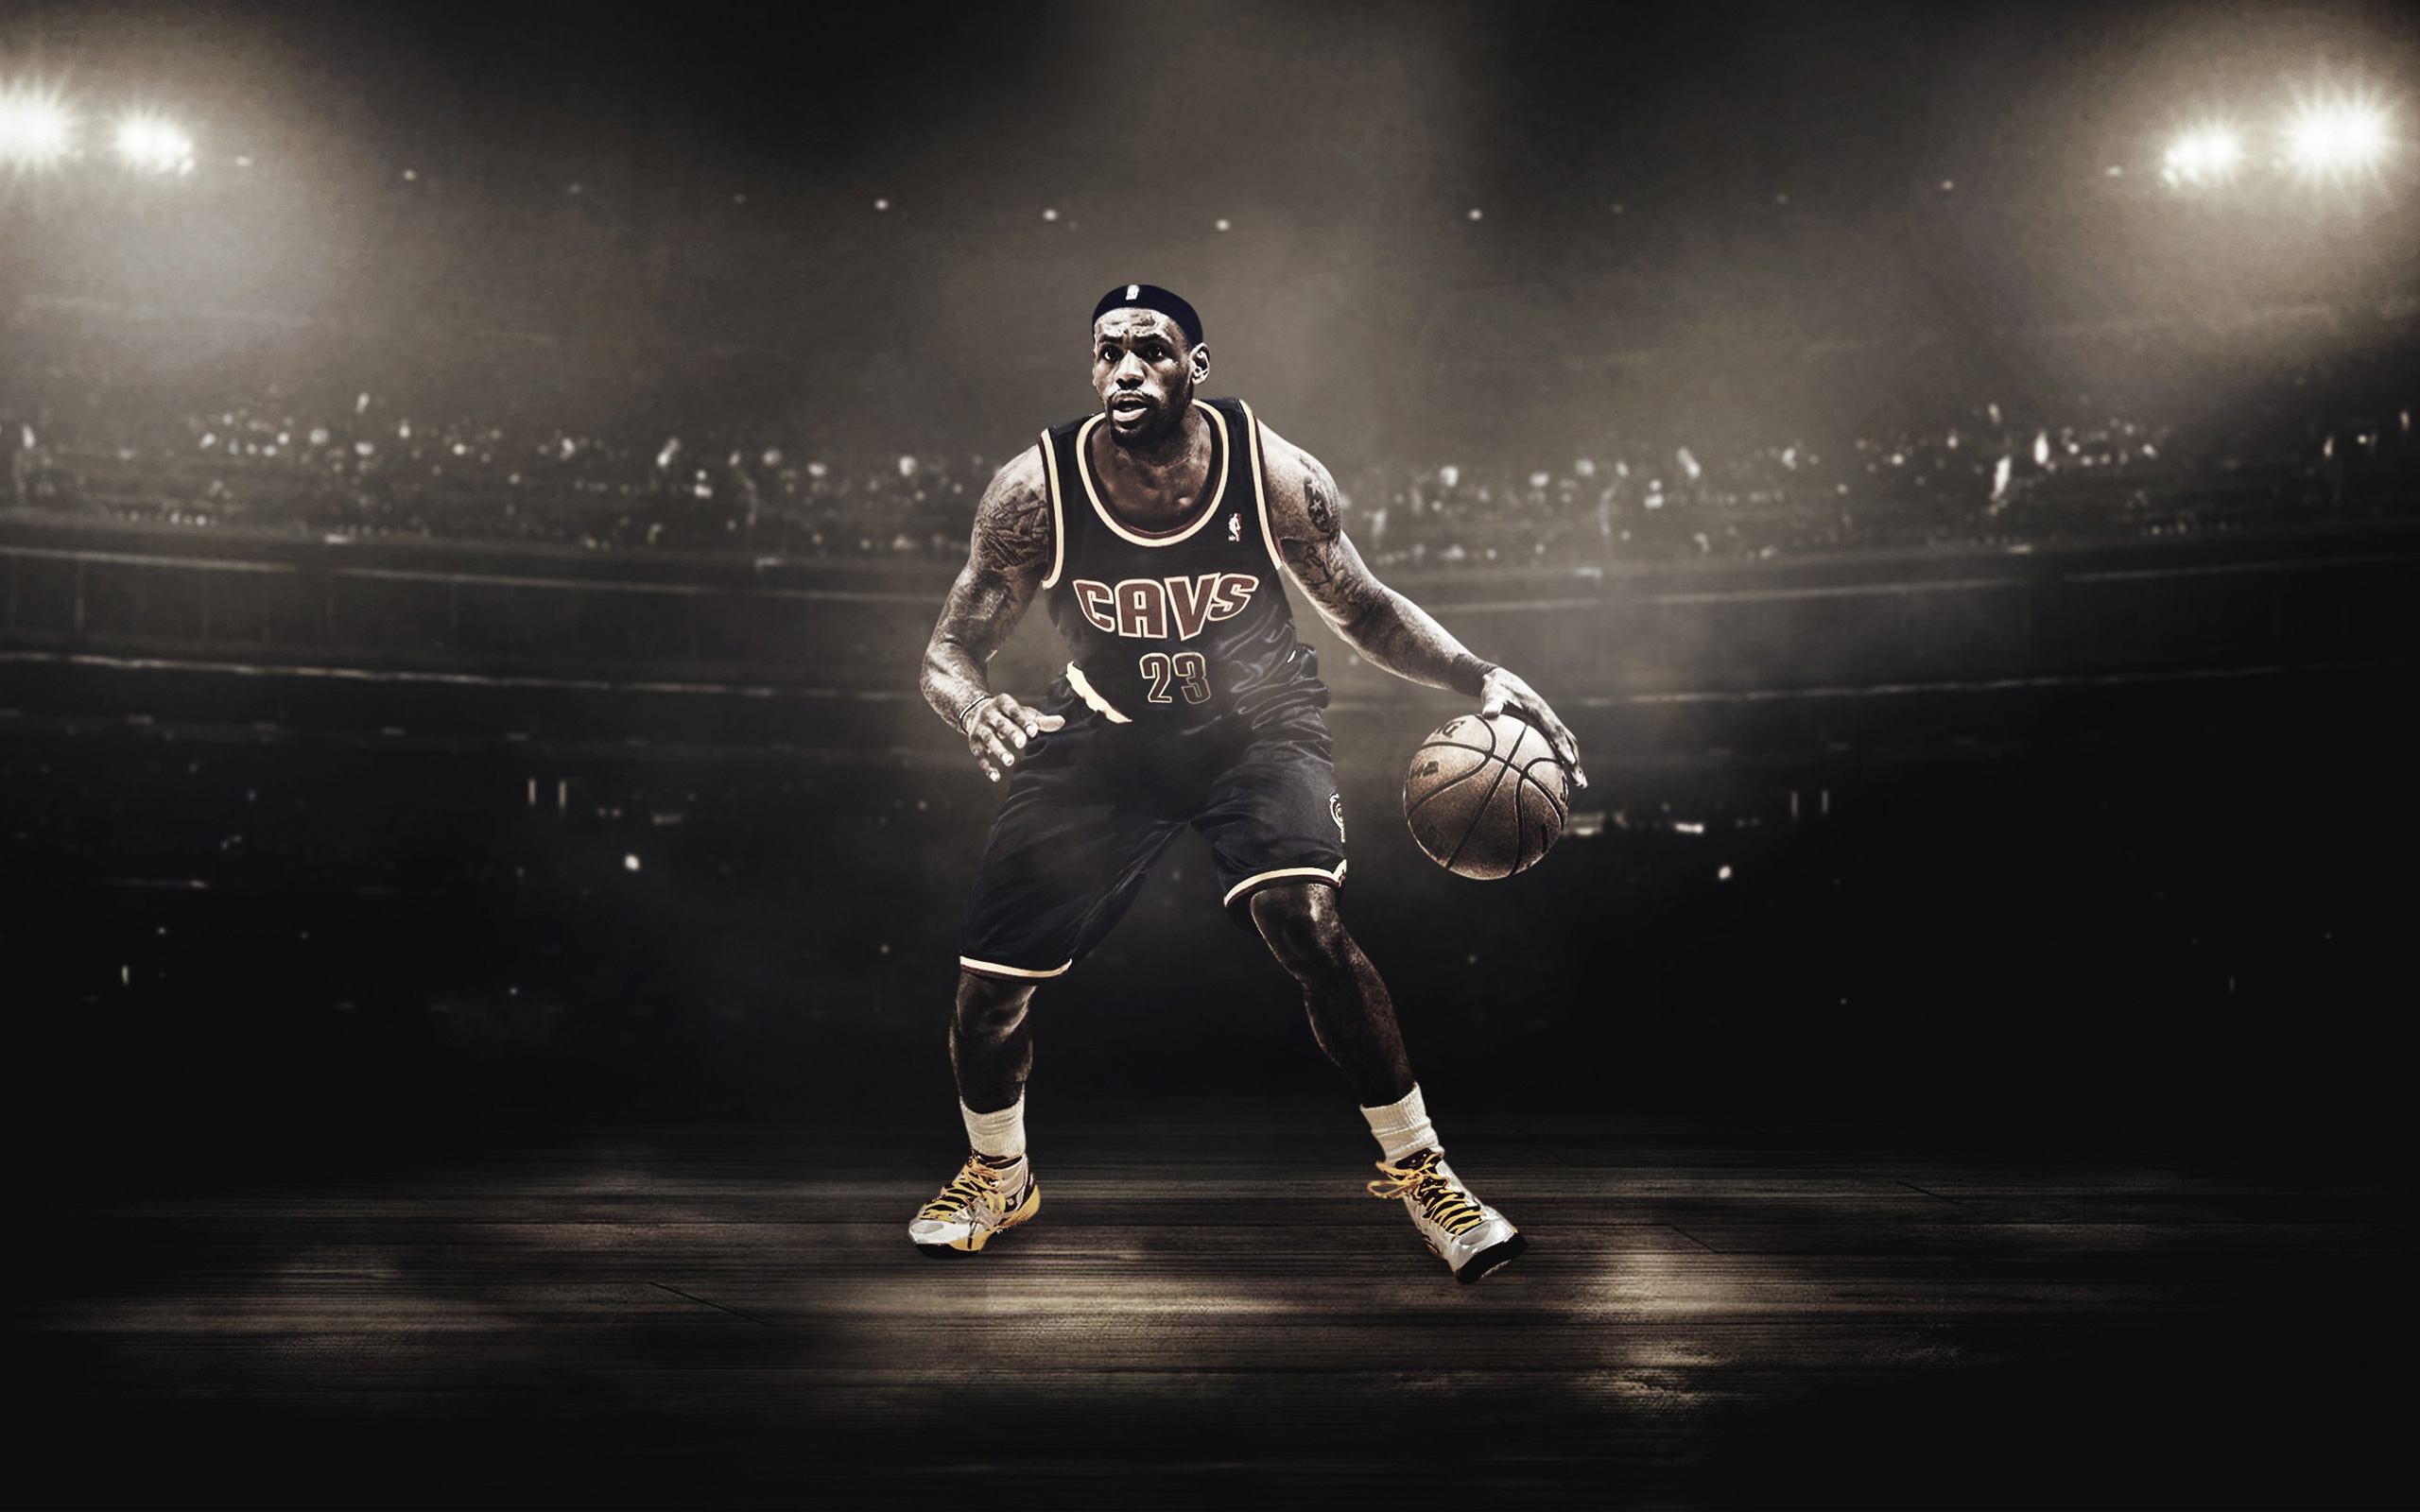 LeBron James Basketball Player wallpaper